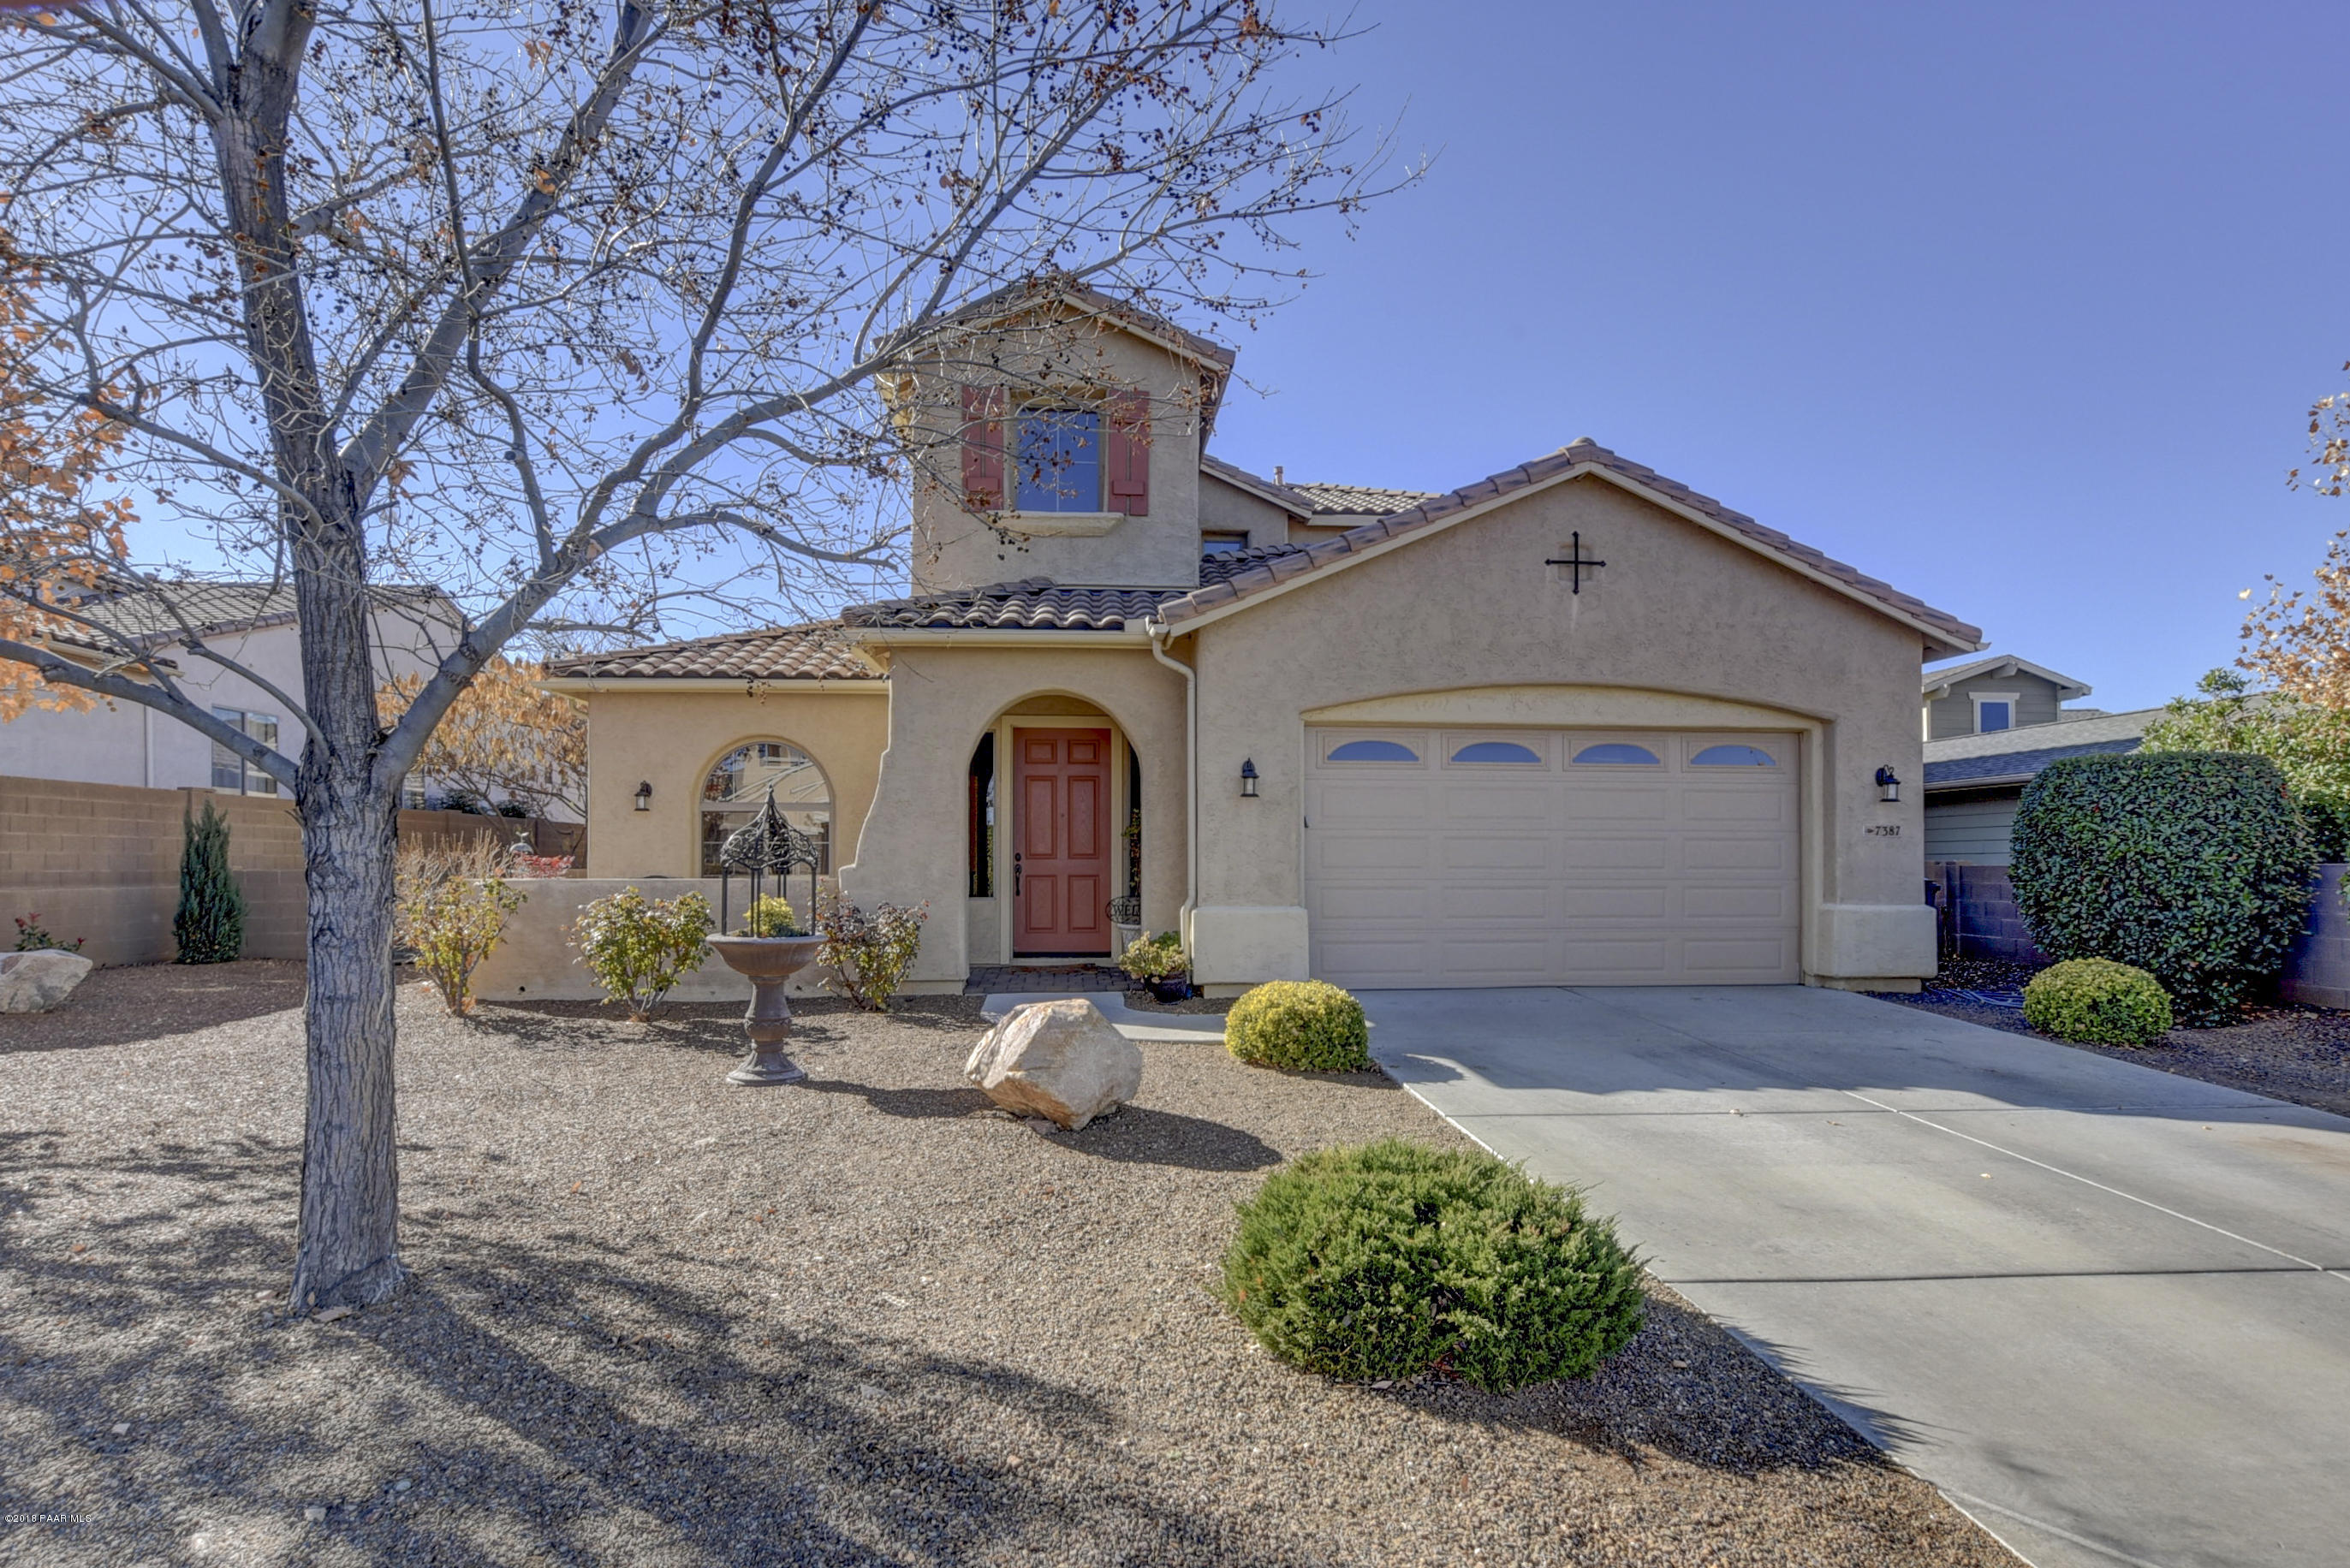 Photo of 7387 Weaver, Prescott Valley, AZ 86314